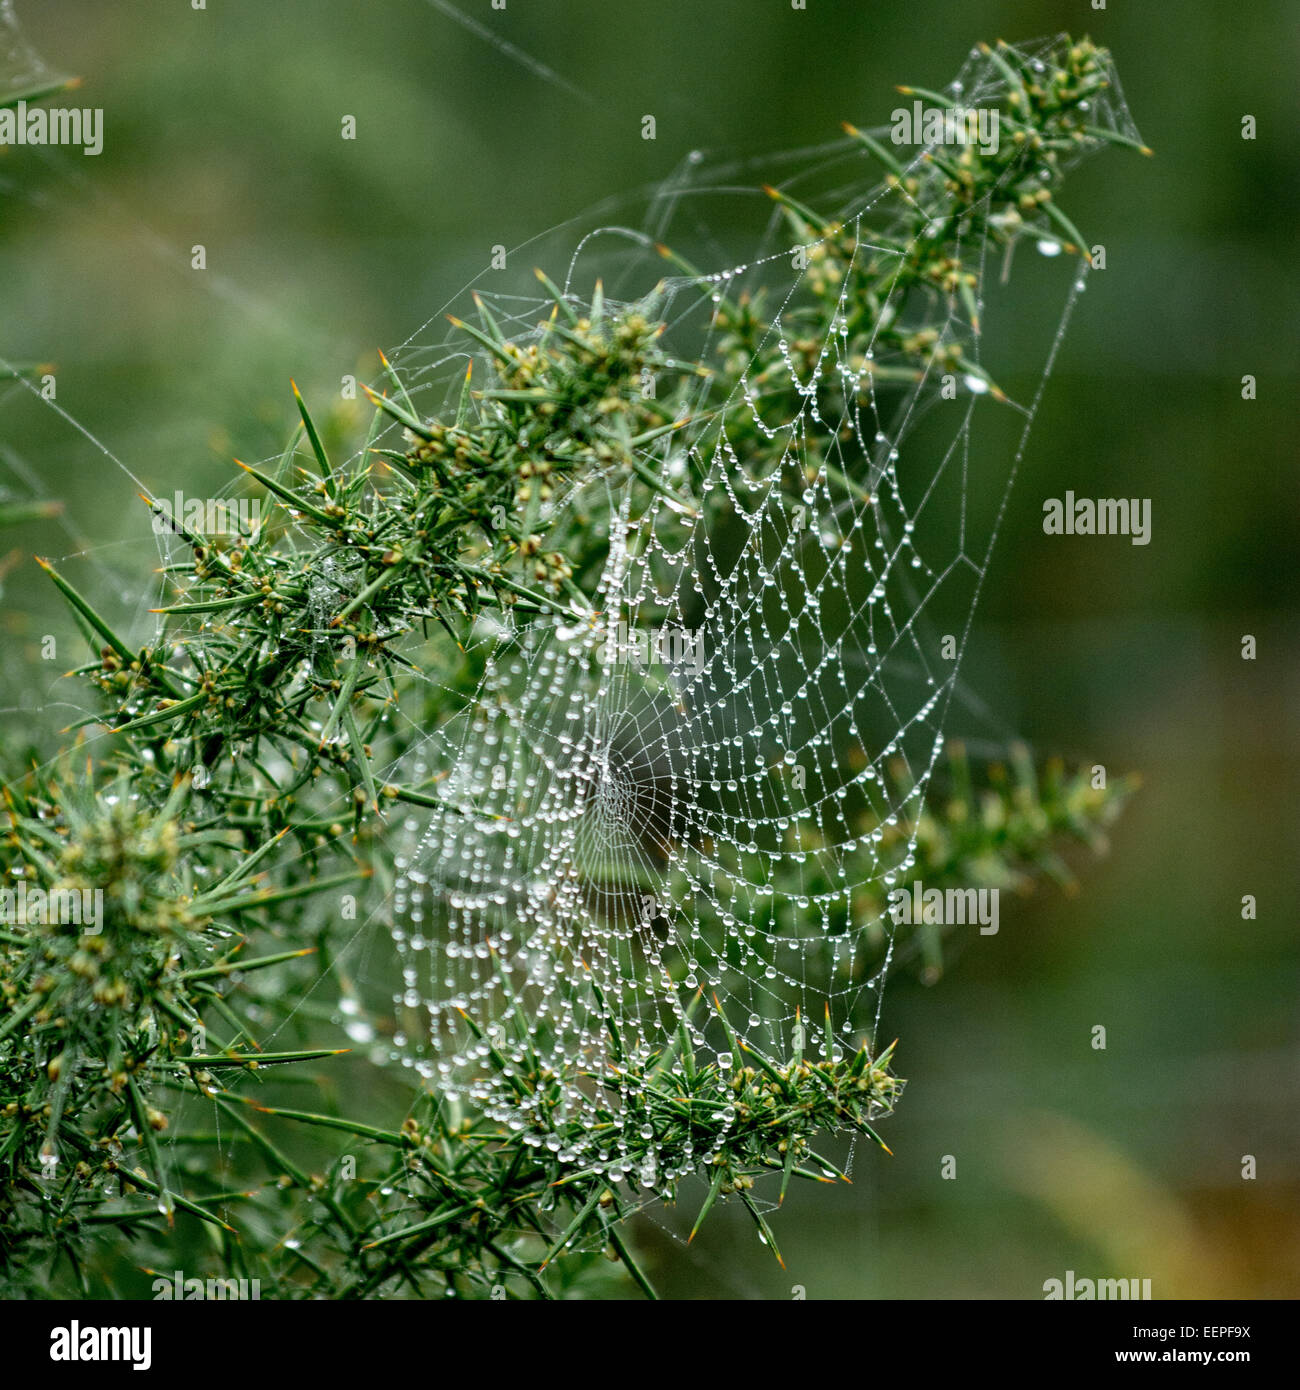 Close up of gorse with dew covered cobweb - Stock Image